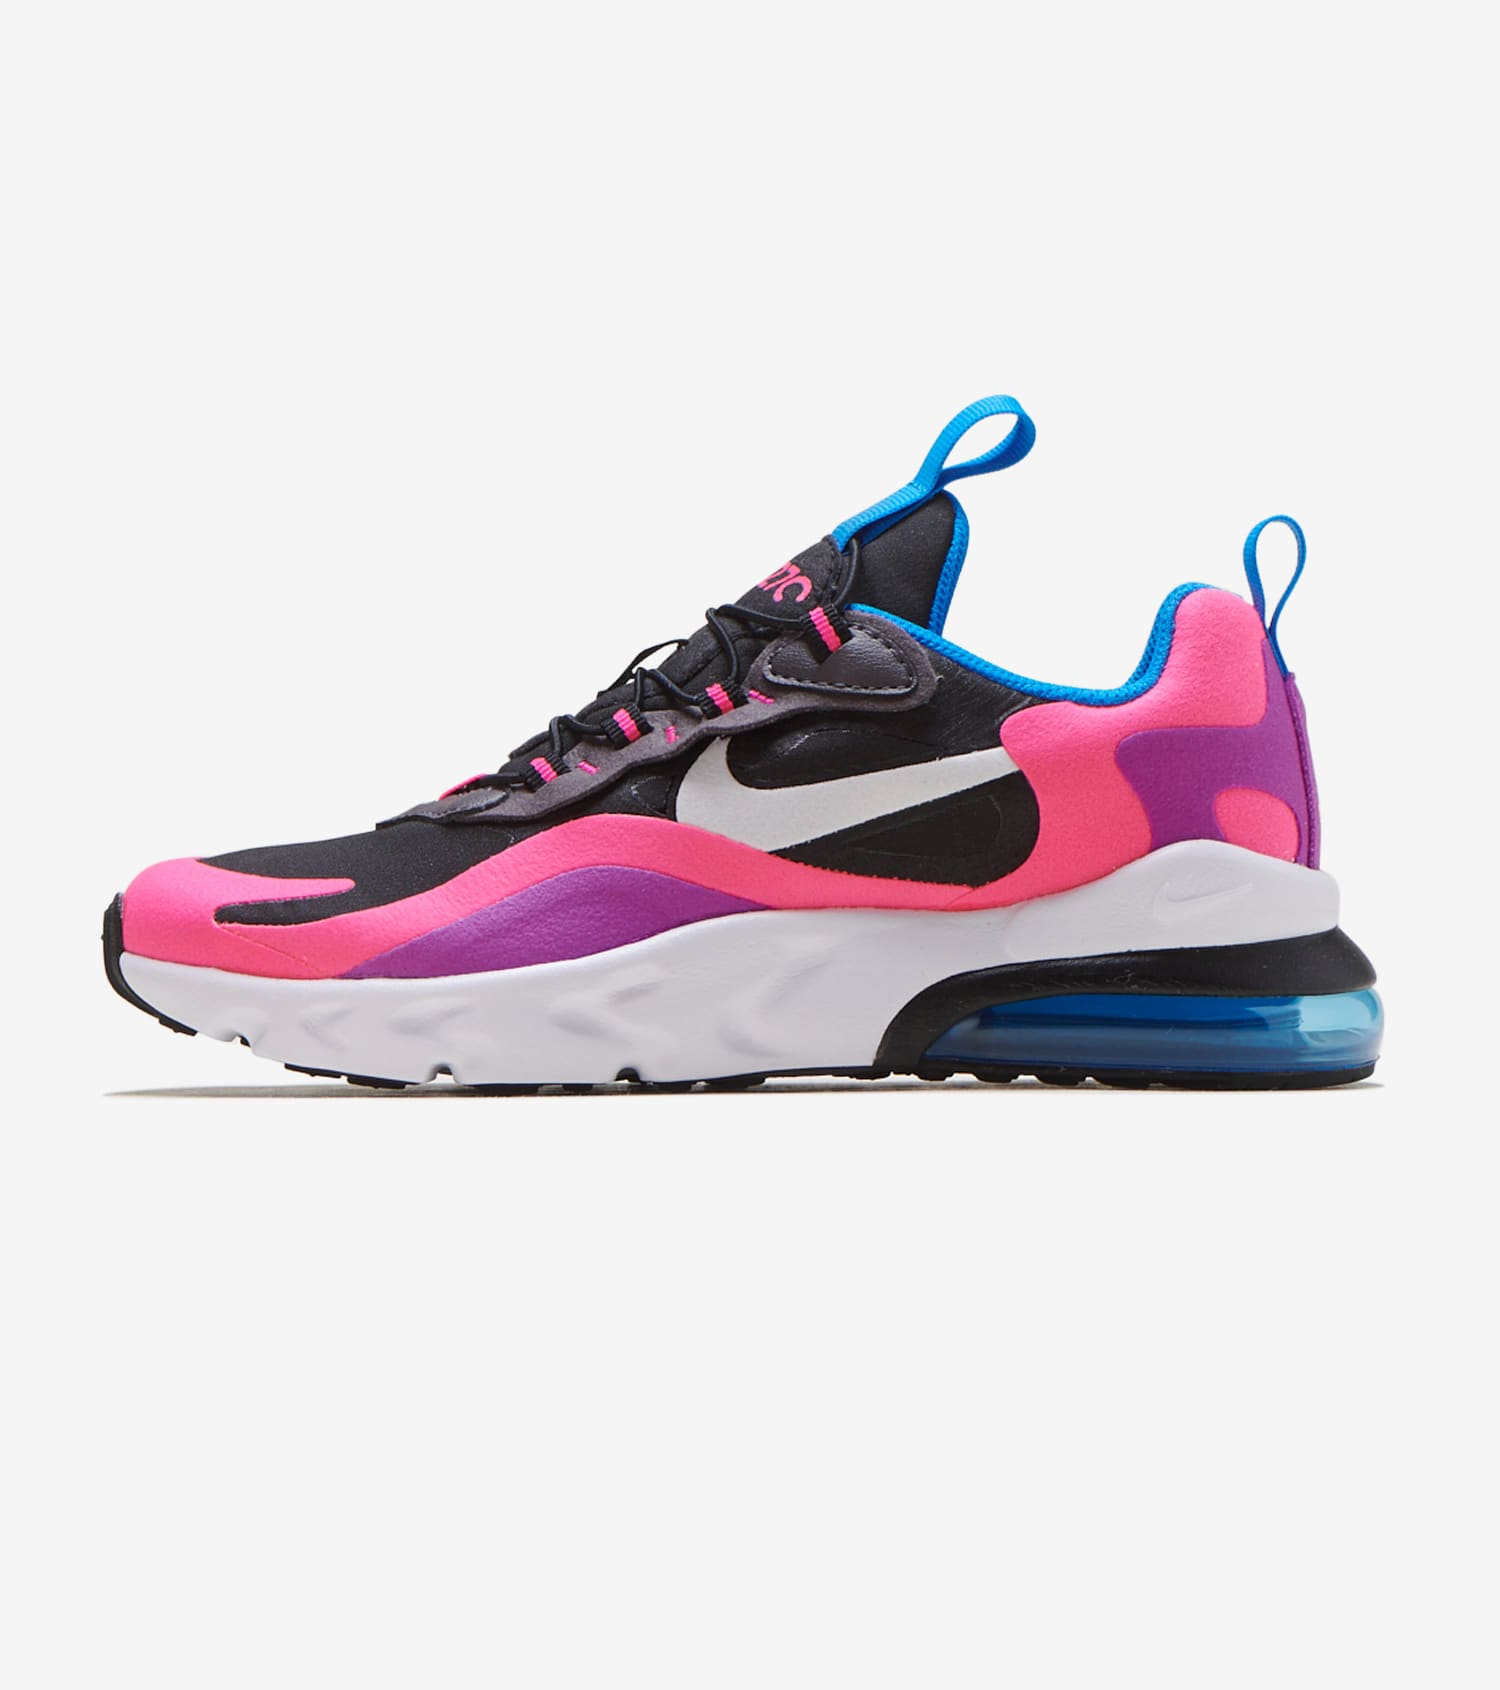 free shipping differently popular stores Air Max 270 React